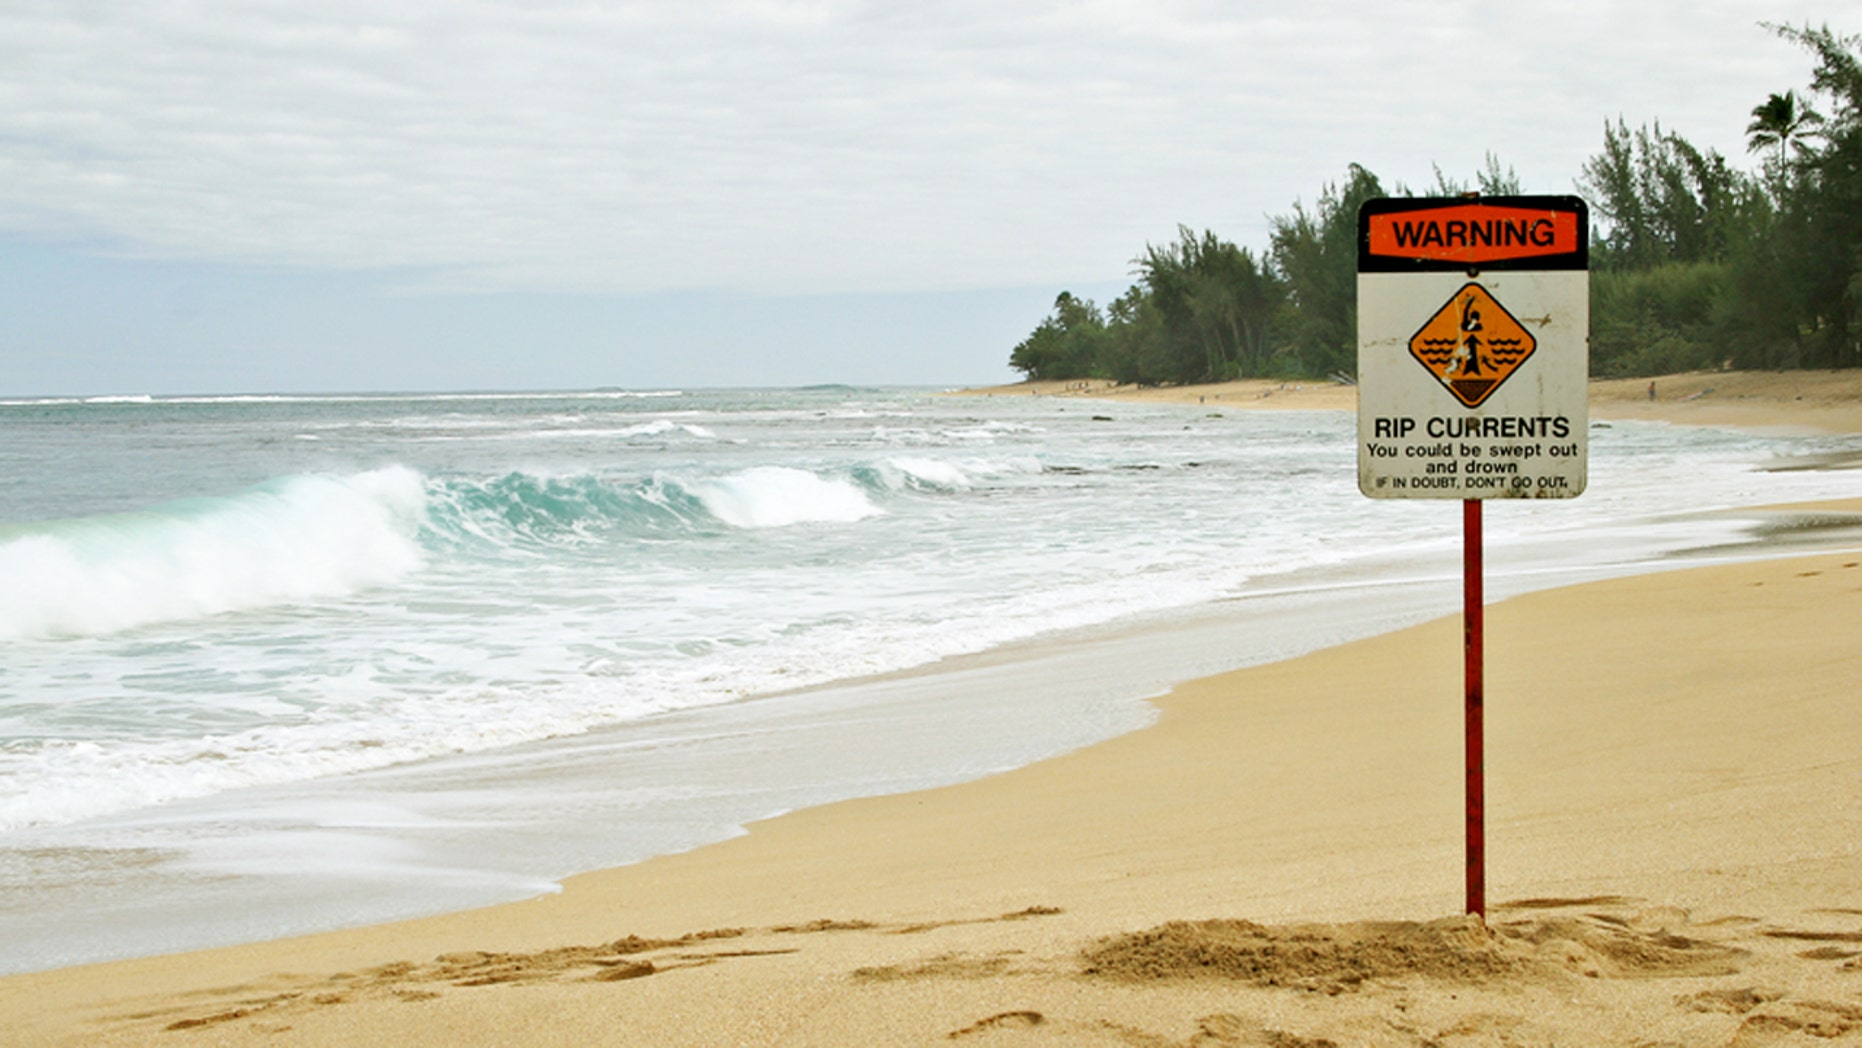 Beware sudden rip currents at placid-looking beaches.